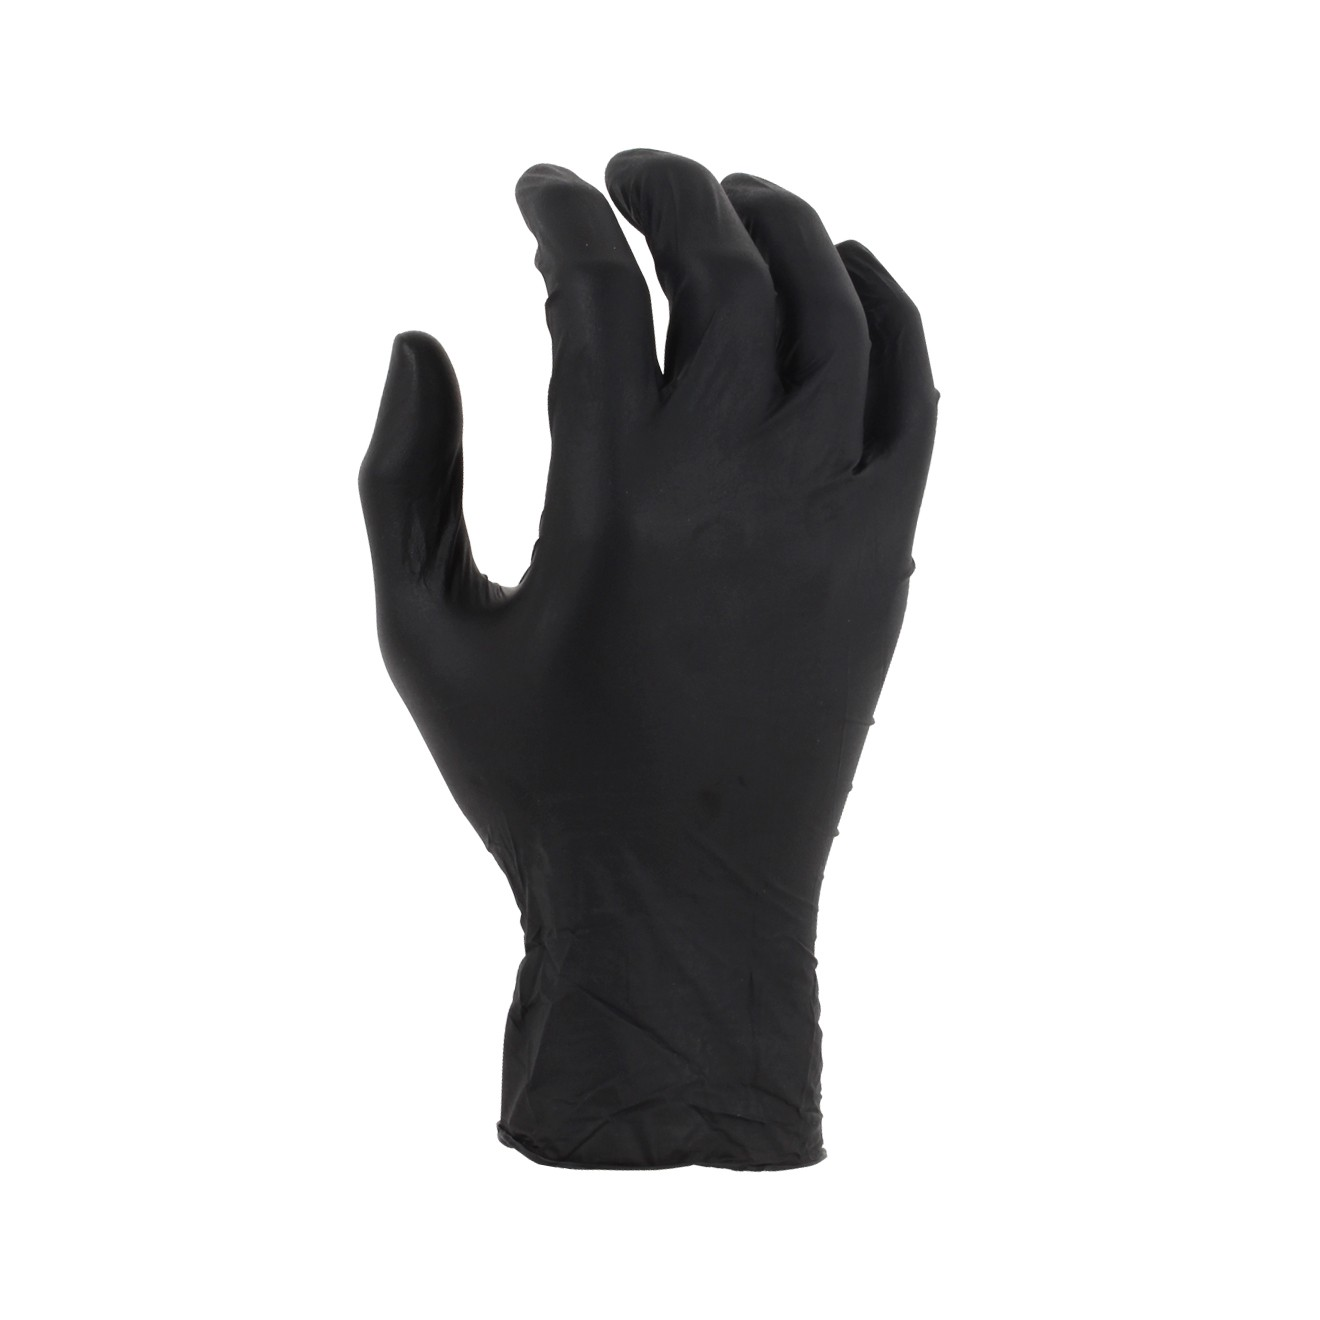 Dextra Touch HD Disposable Nitrile Glove